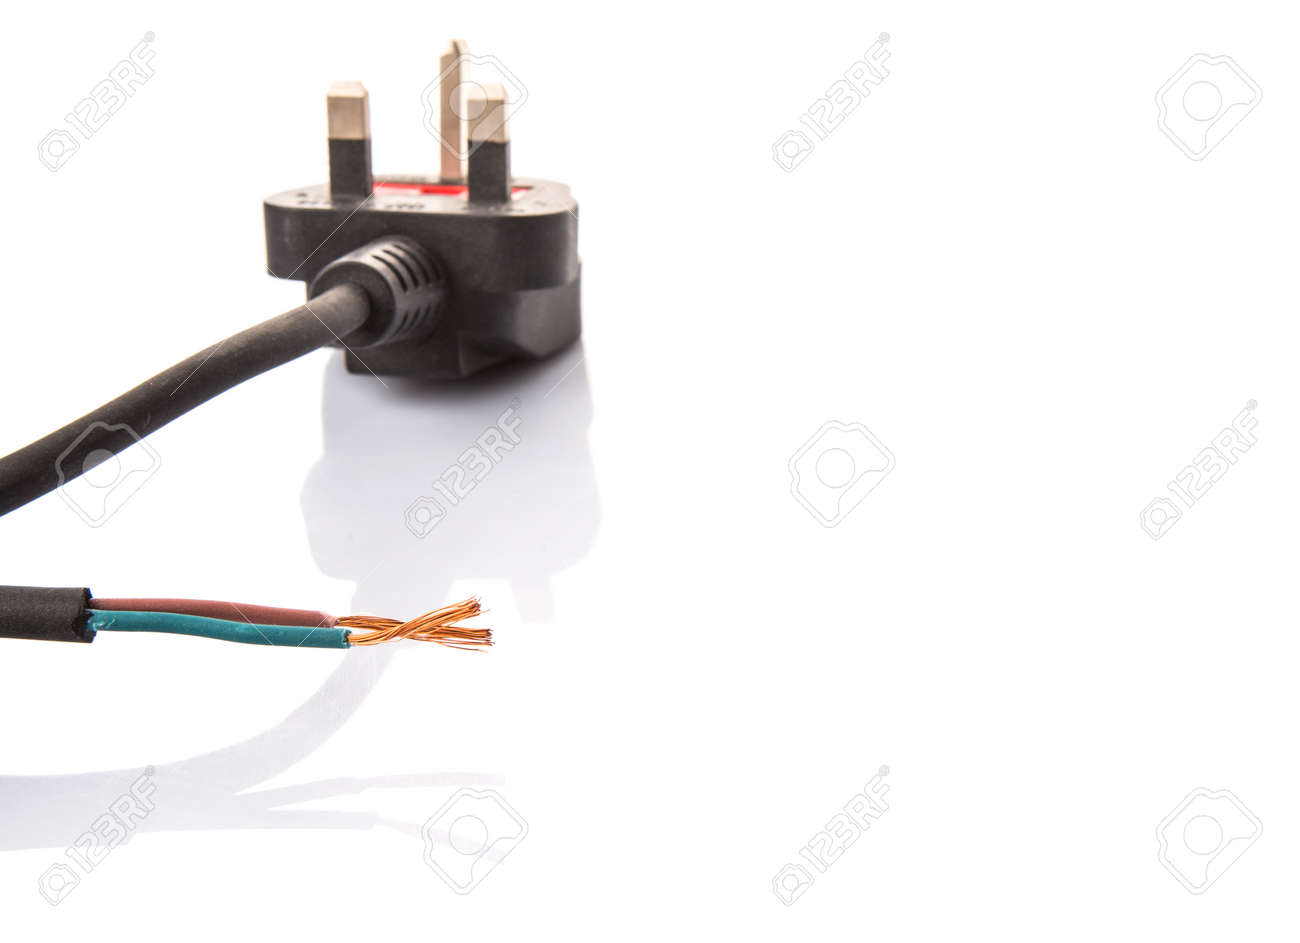 British Standard Three Pin AC Power Plugs And Exposed Electrical ...